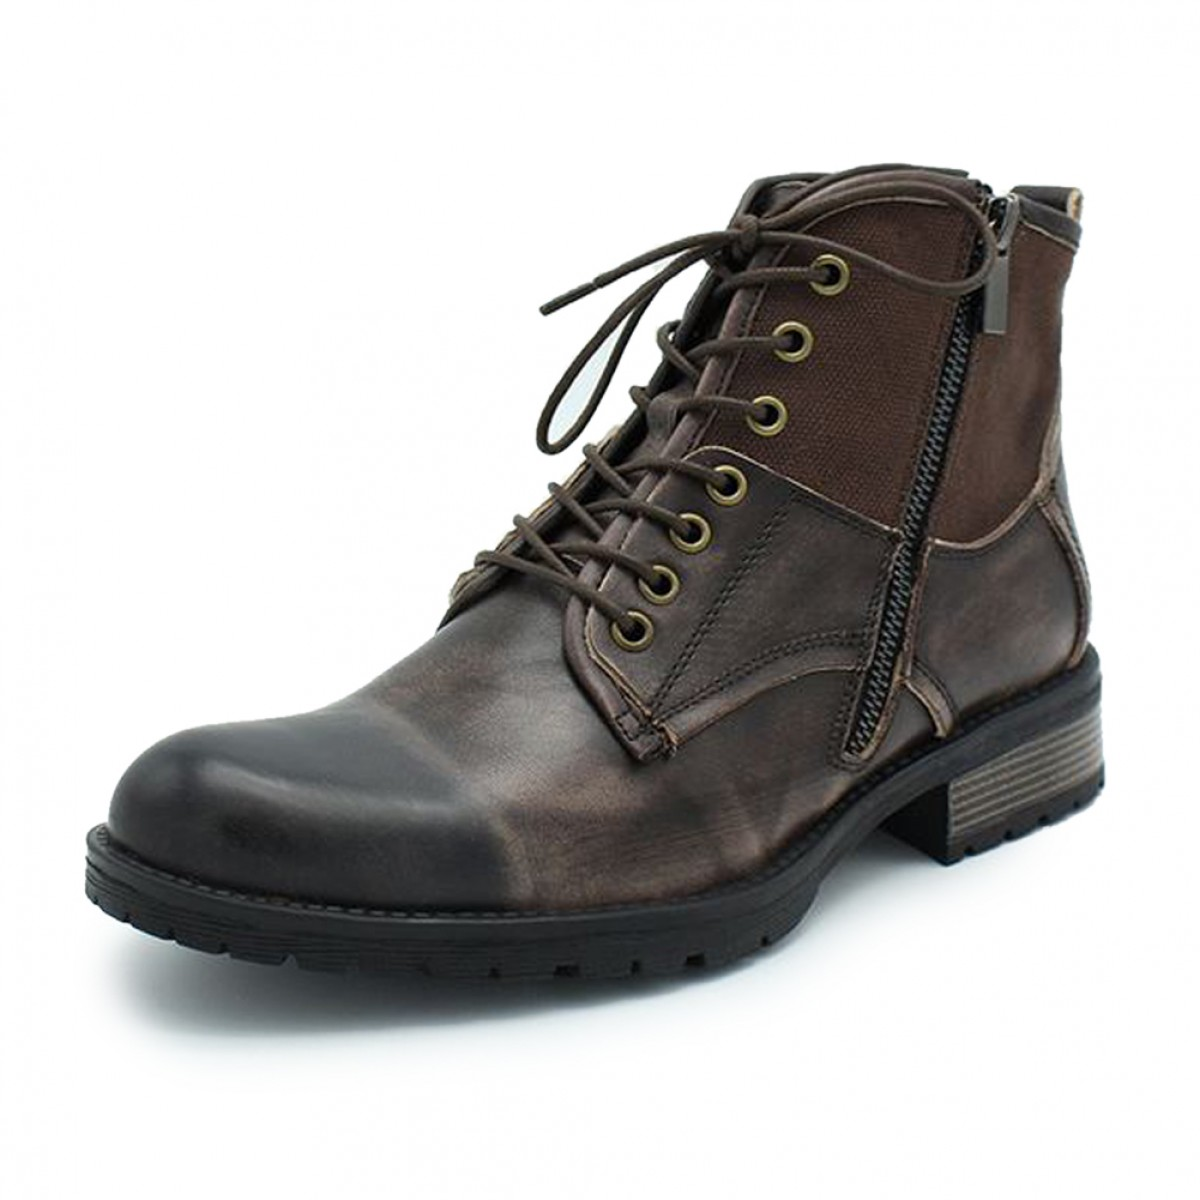 Vintage Leather Boot 47